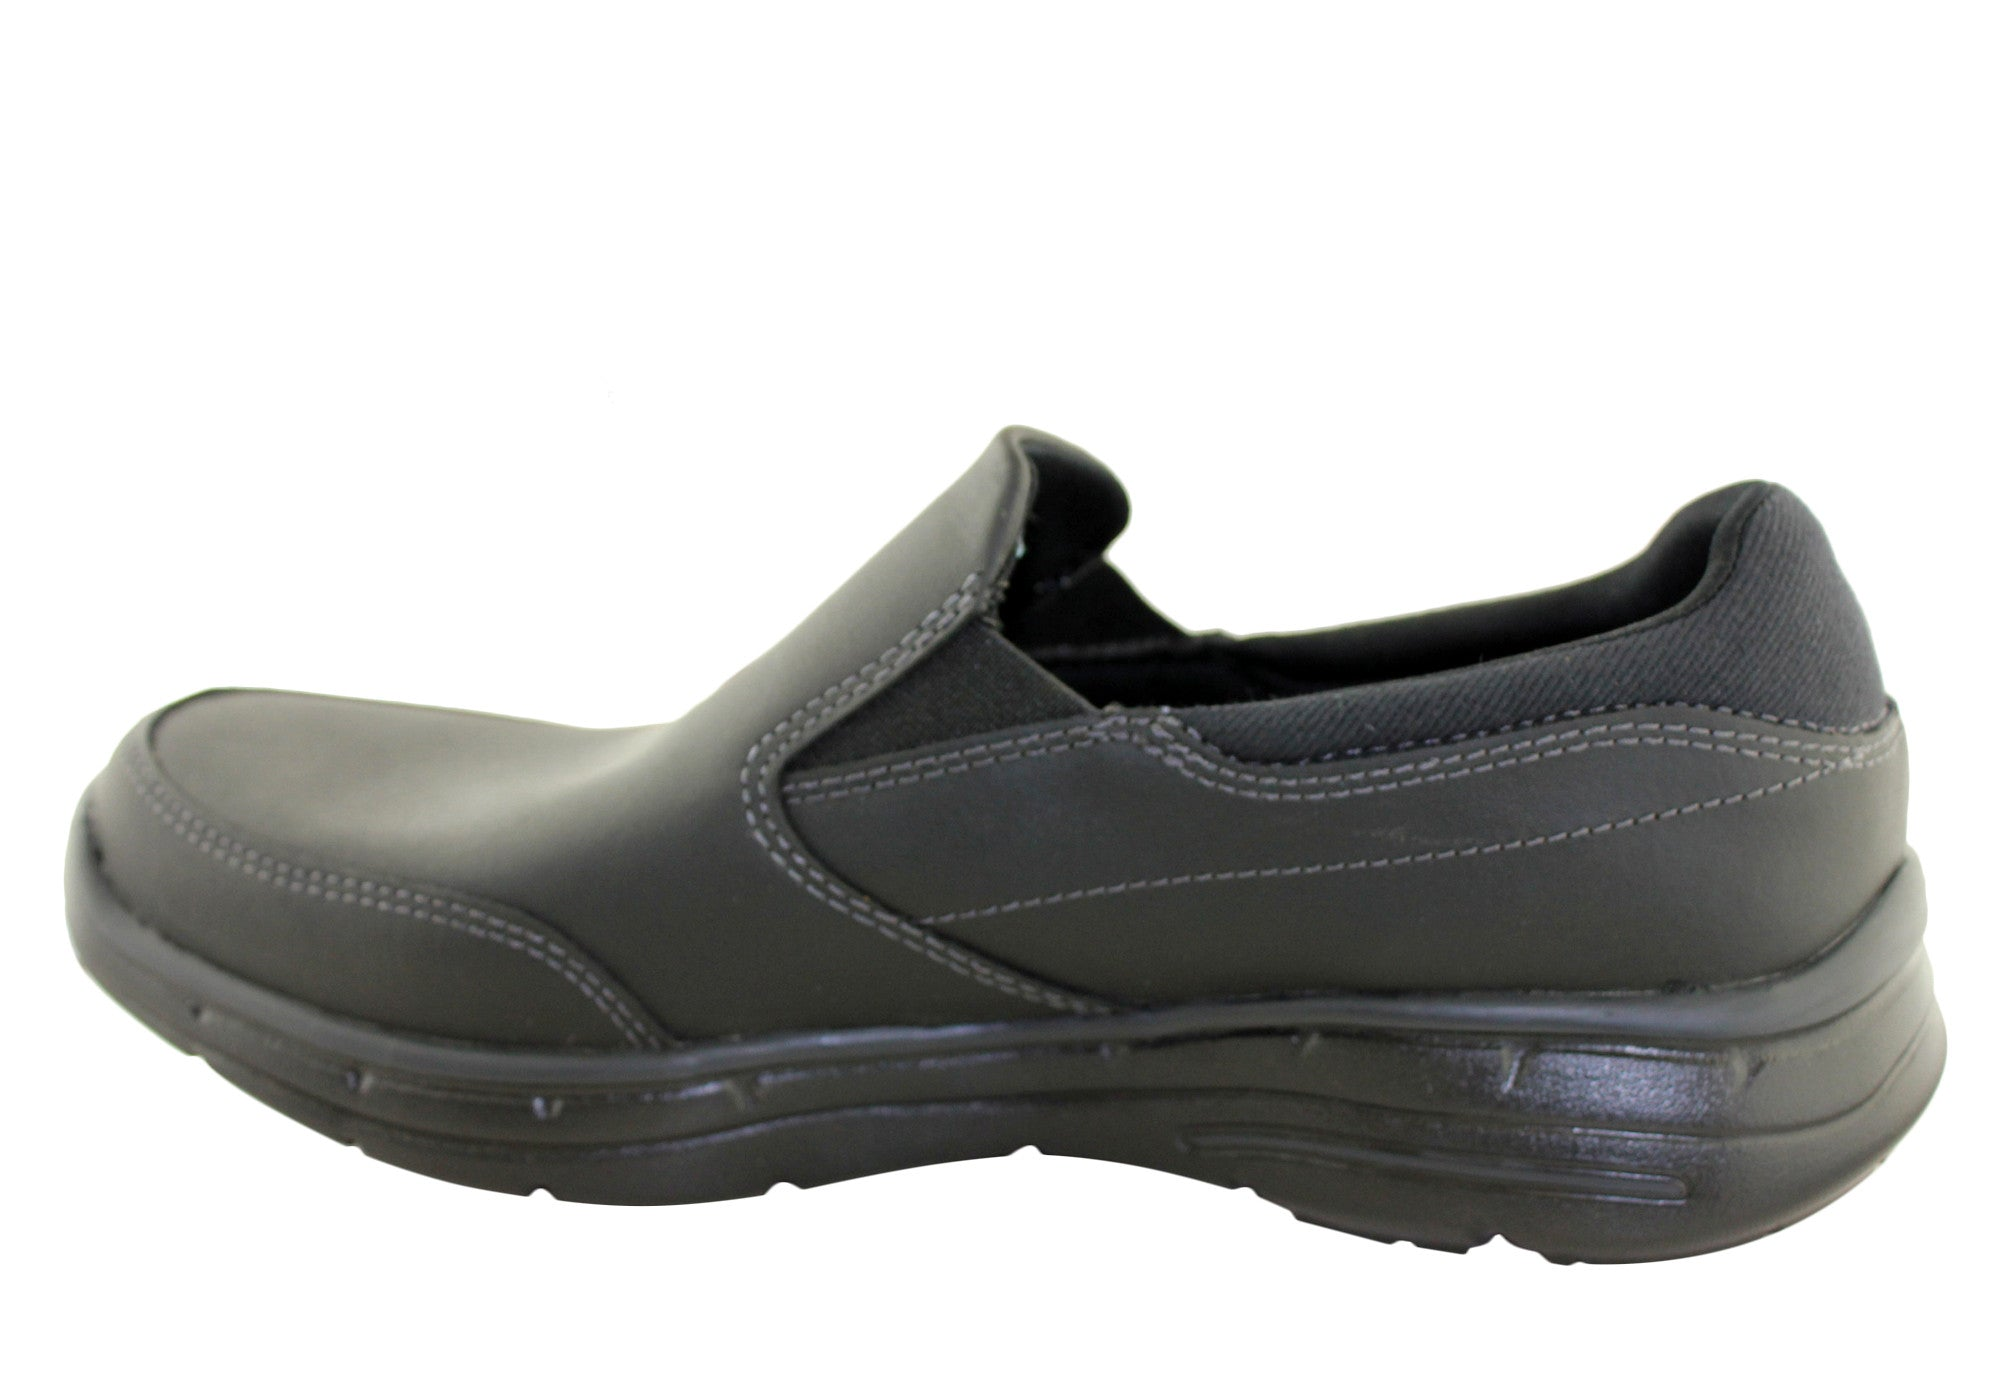 95f8cf6b098 Skechers Mens Glides Calculous Relaxed Fit Slipon Shoes